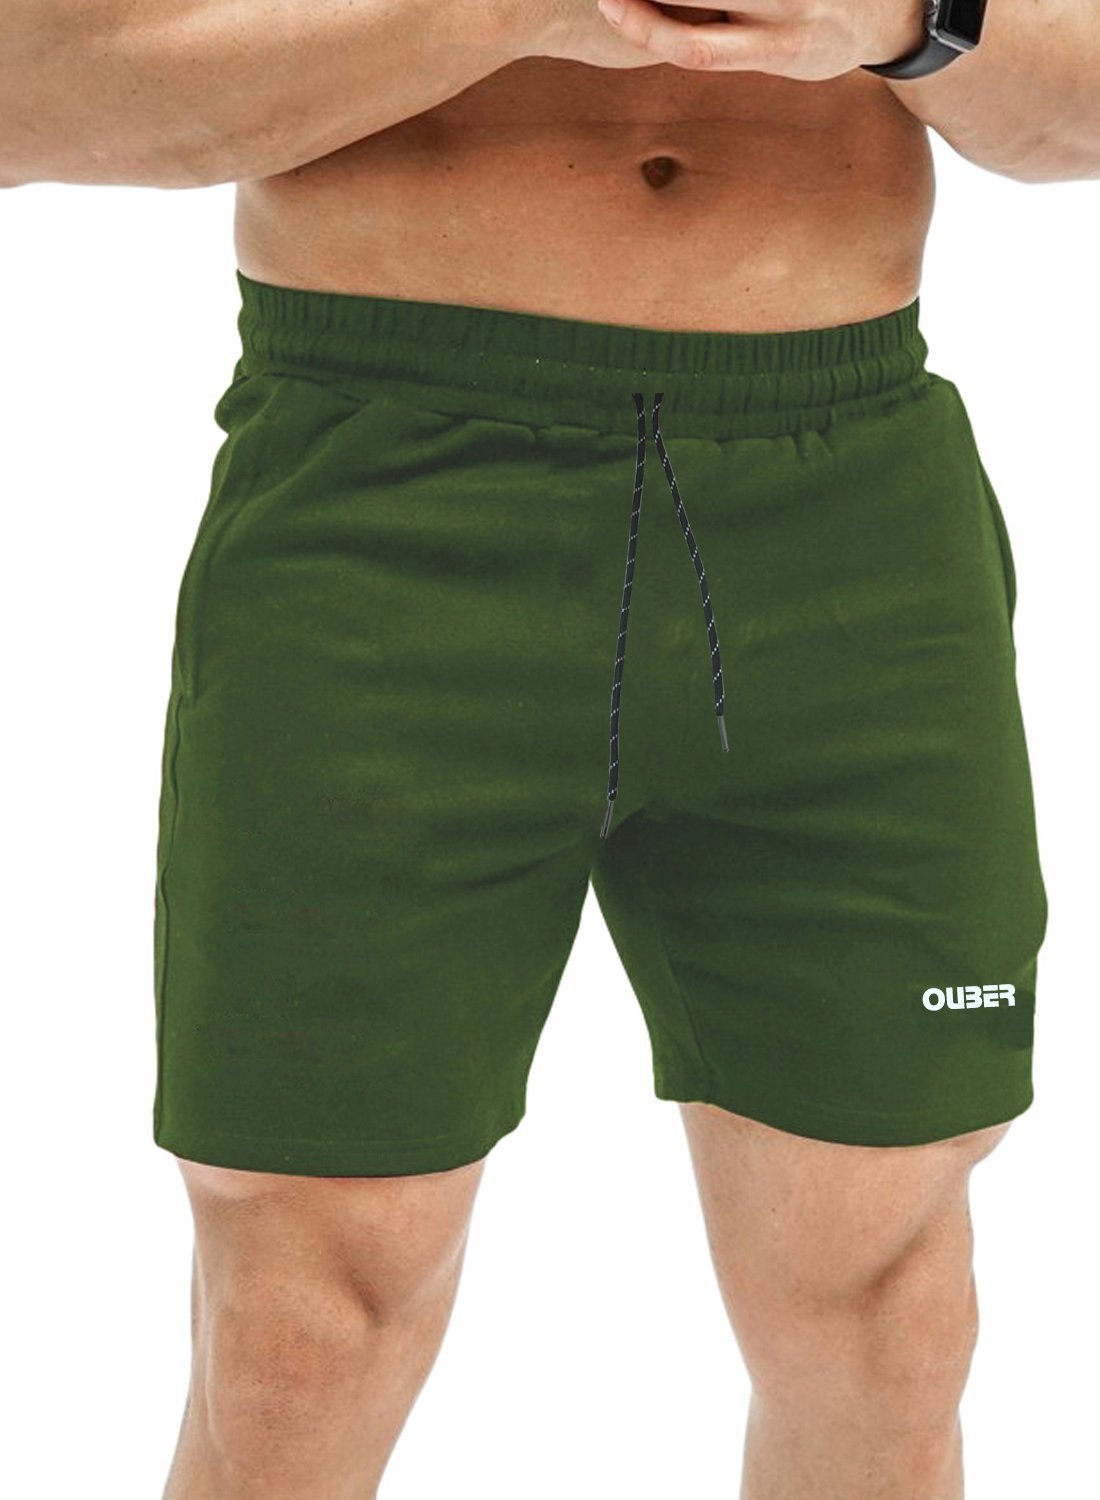 Ouber Men's Fitted Workout Shorts Gym Bodybuilding Joggers Short with Zipper Pockets